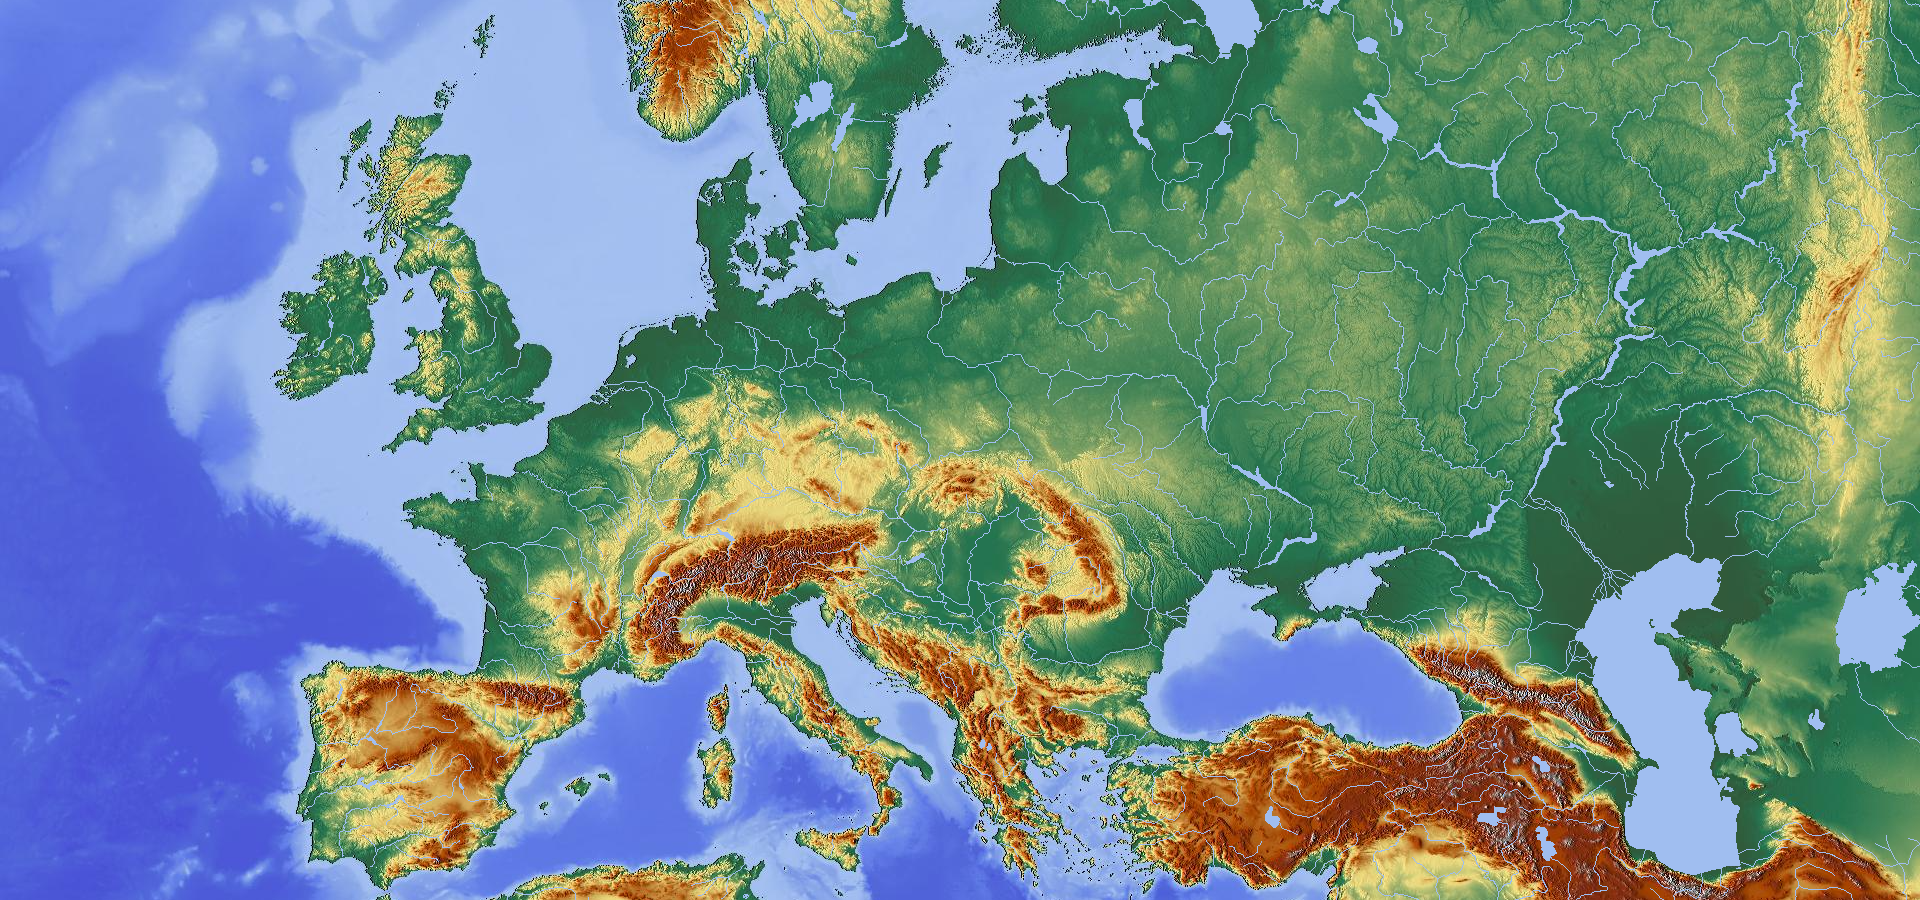 Topography Map Of Europe Pin by Andrew Gloe on My Saves in 2020 | Europe map, Topographic